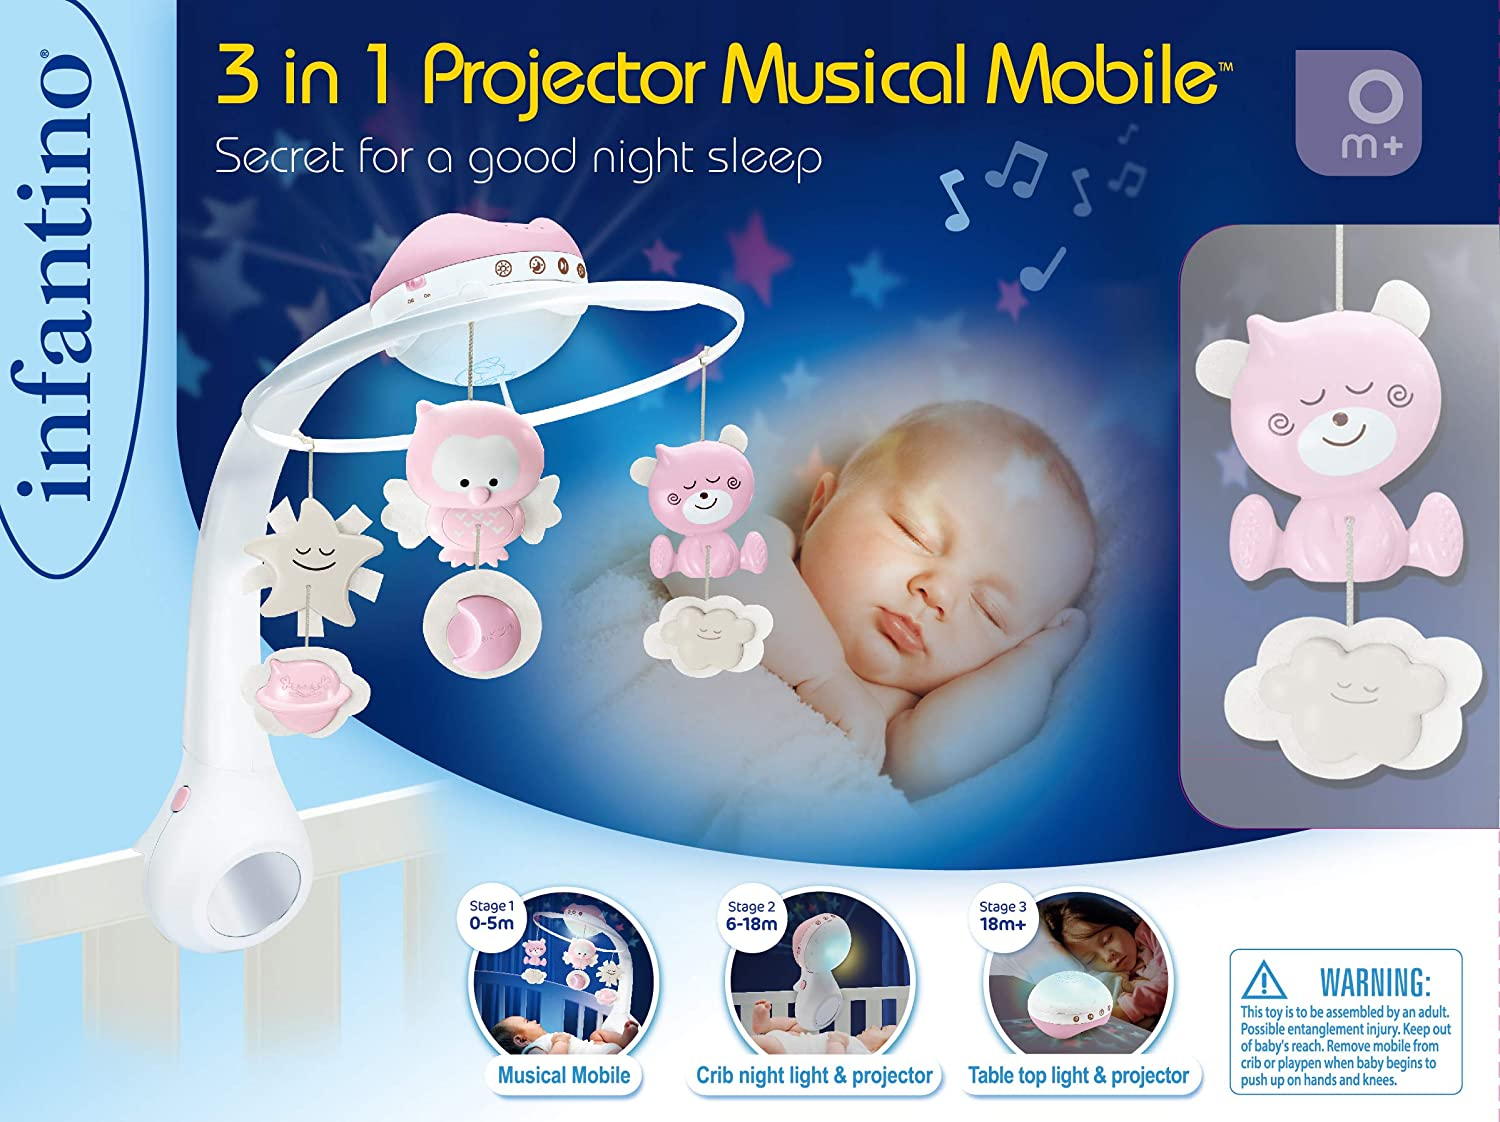 Infantino 3 in 1 Projector musical mobile cot /& table top night light wake up mode simulates daylight Grey